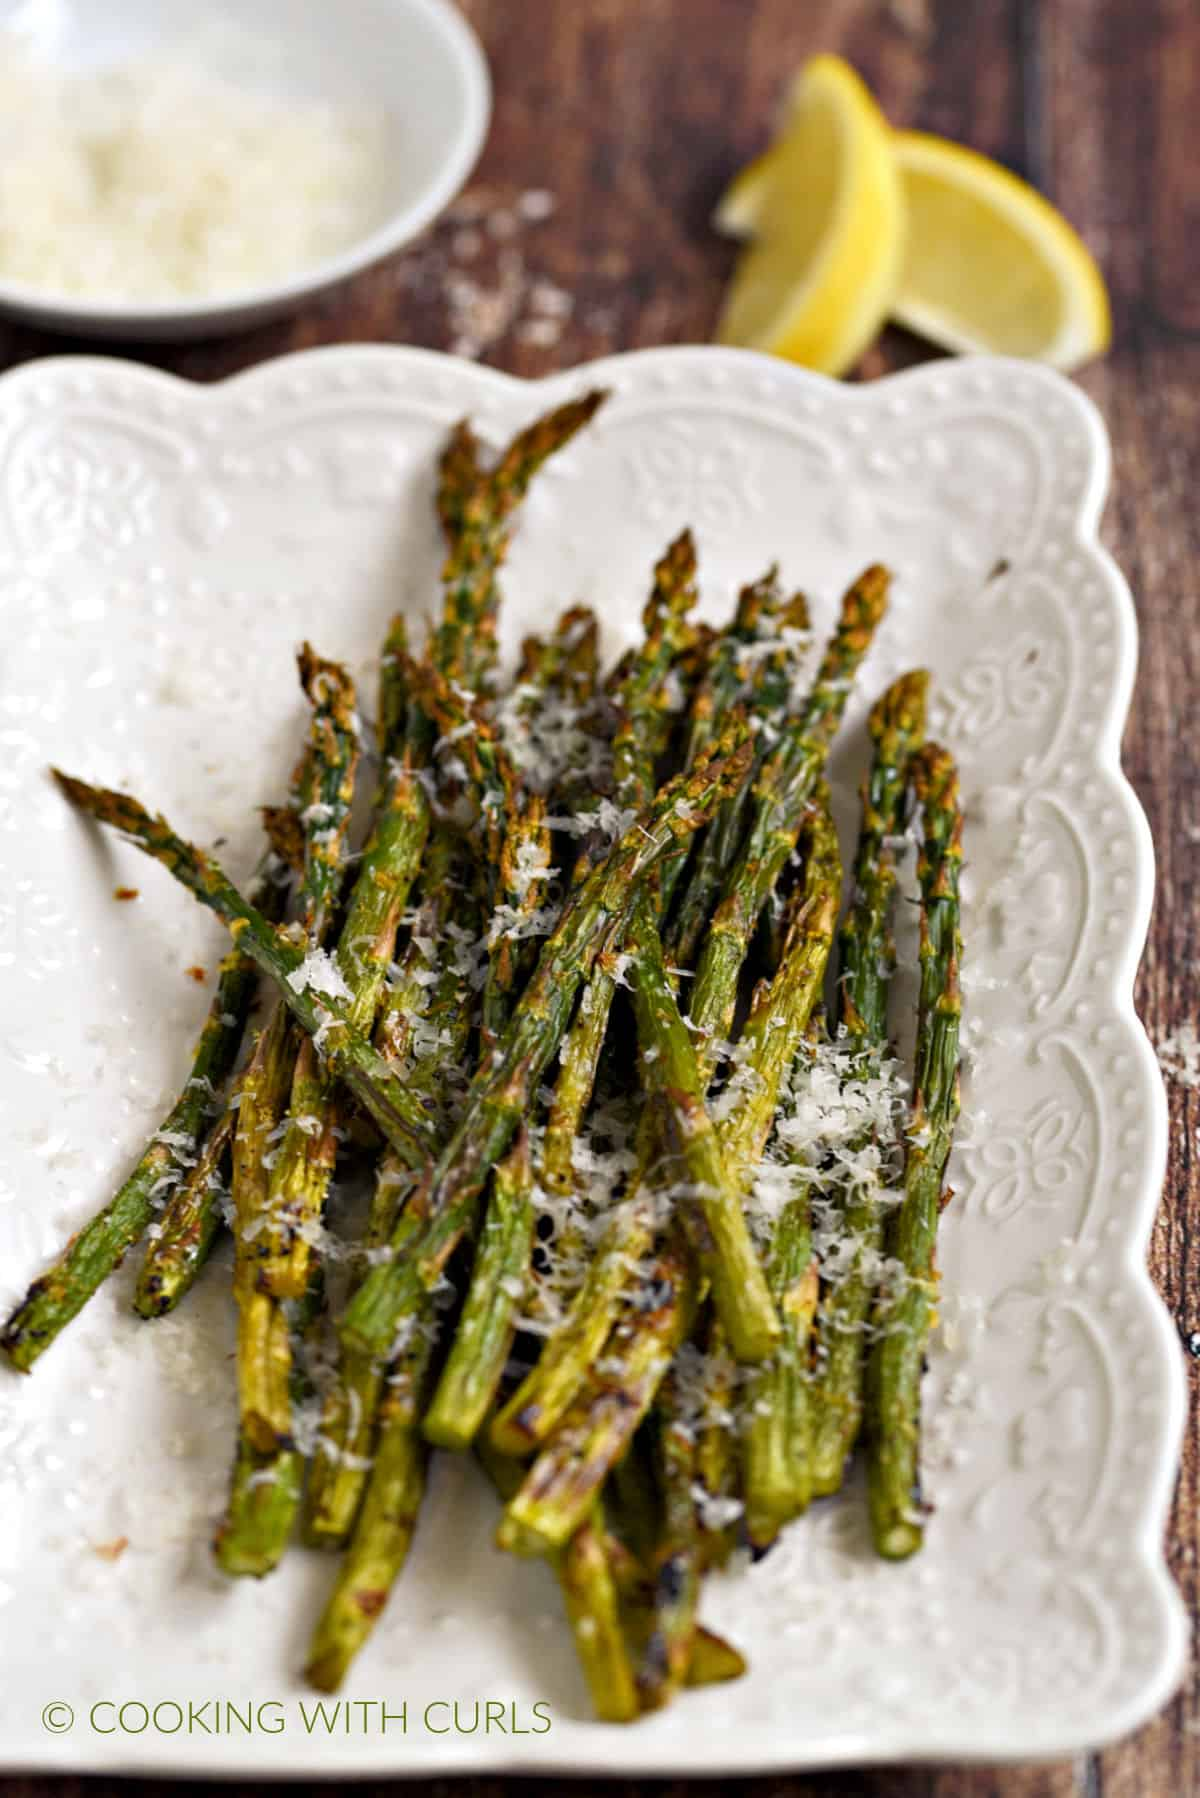 Asparagus spears topped with parmesan cheese and lemon zest on a white platter with a bowl of cheese and two lemon wedges in the background.